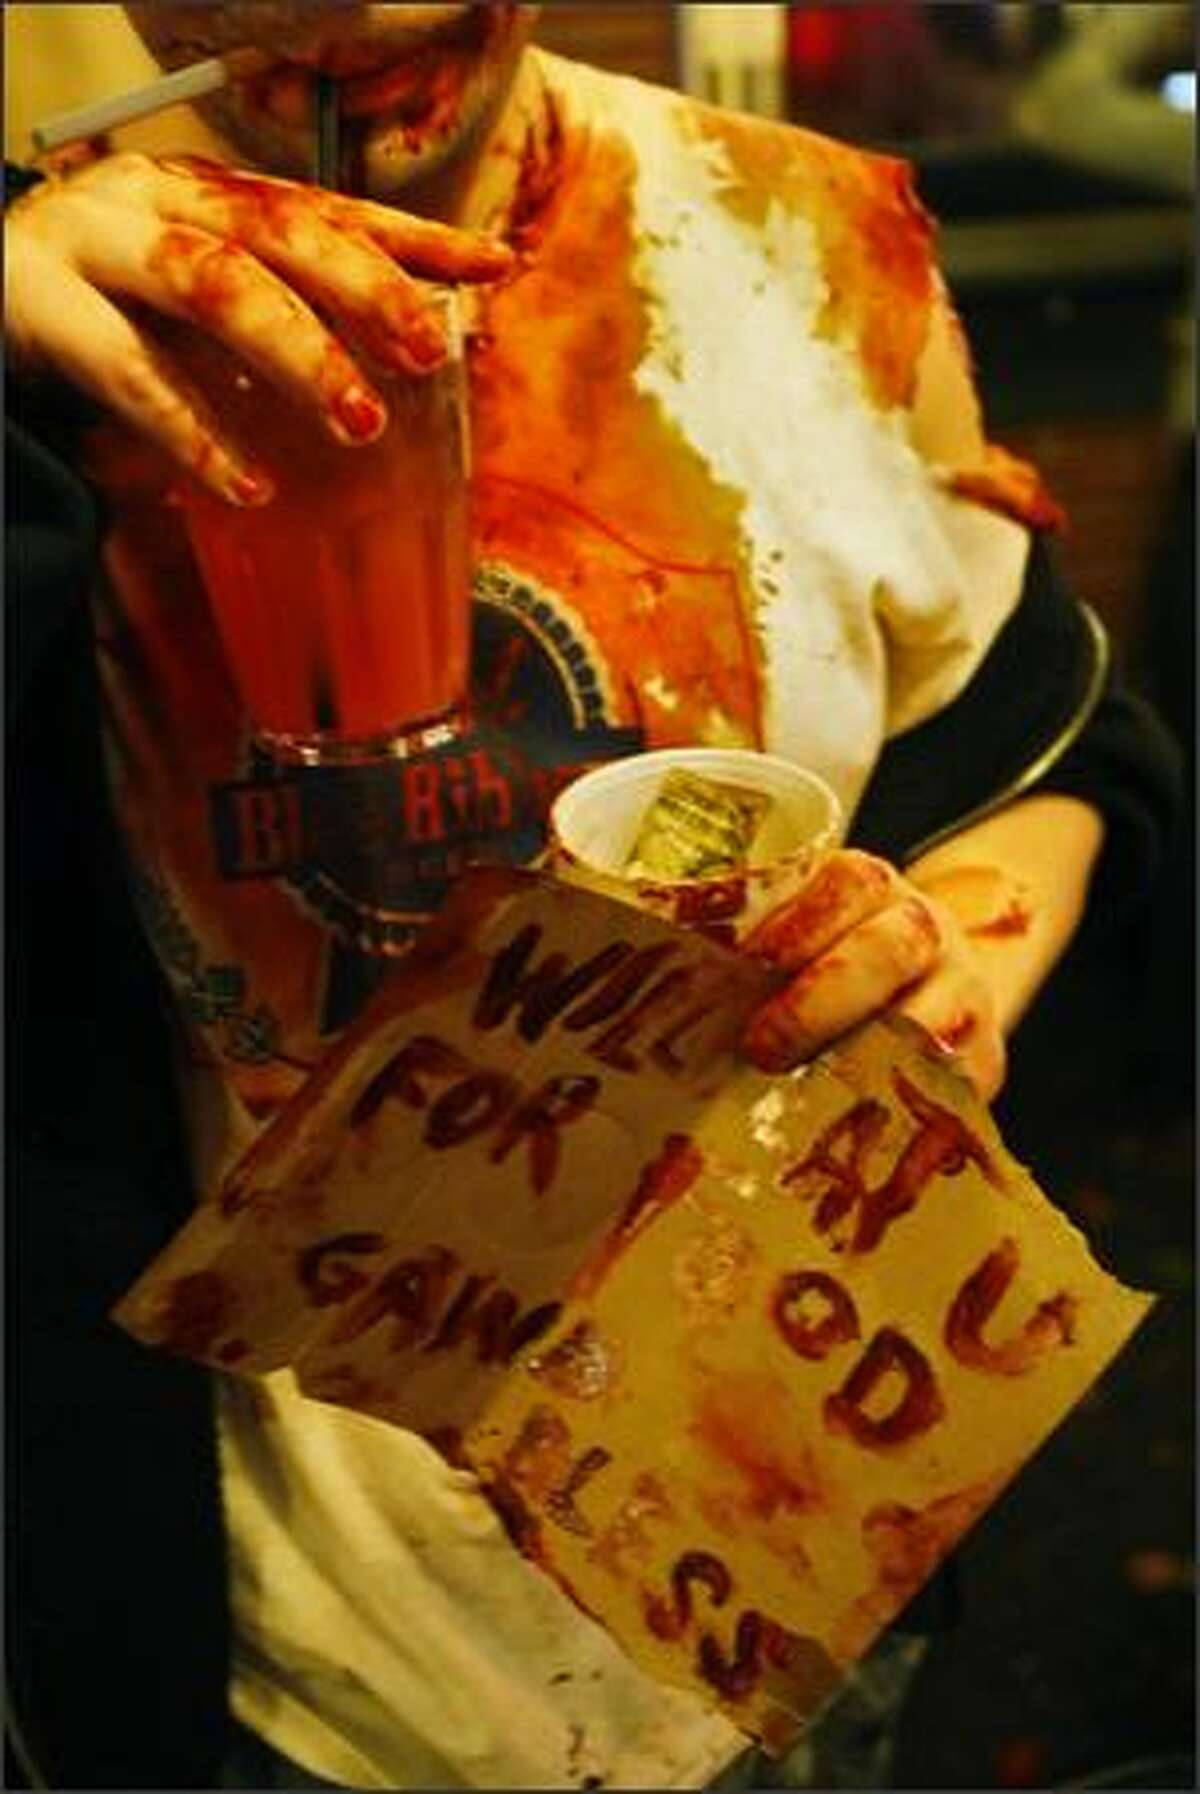 """A """"zombie"""" holds a sign that says """"will eat u for food, gawd bless."""""""